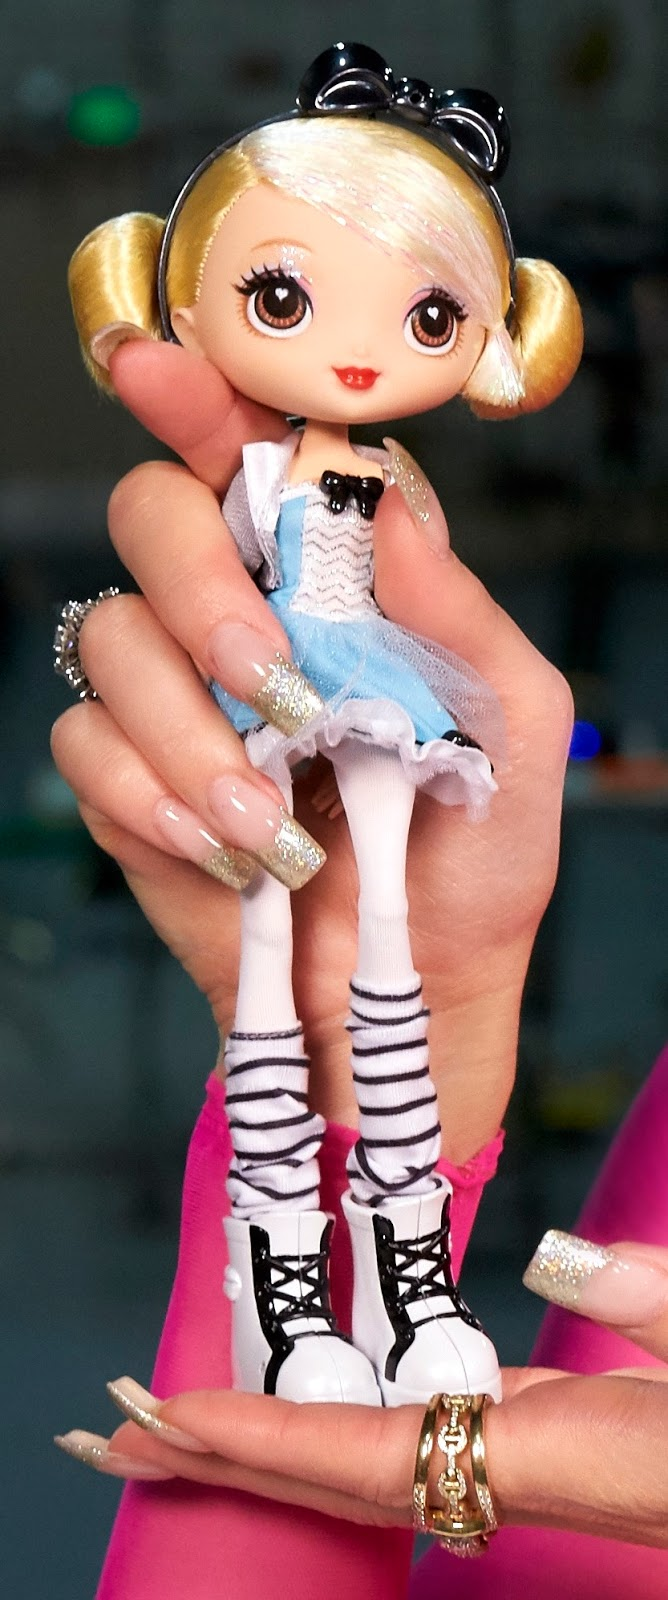 Jamie's Toy Blog: Kuu Kuu Harajuku Doll Line Preview